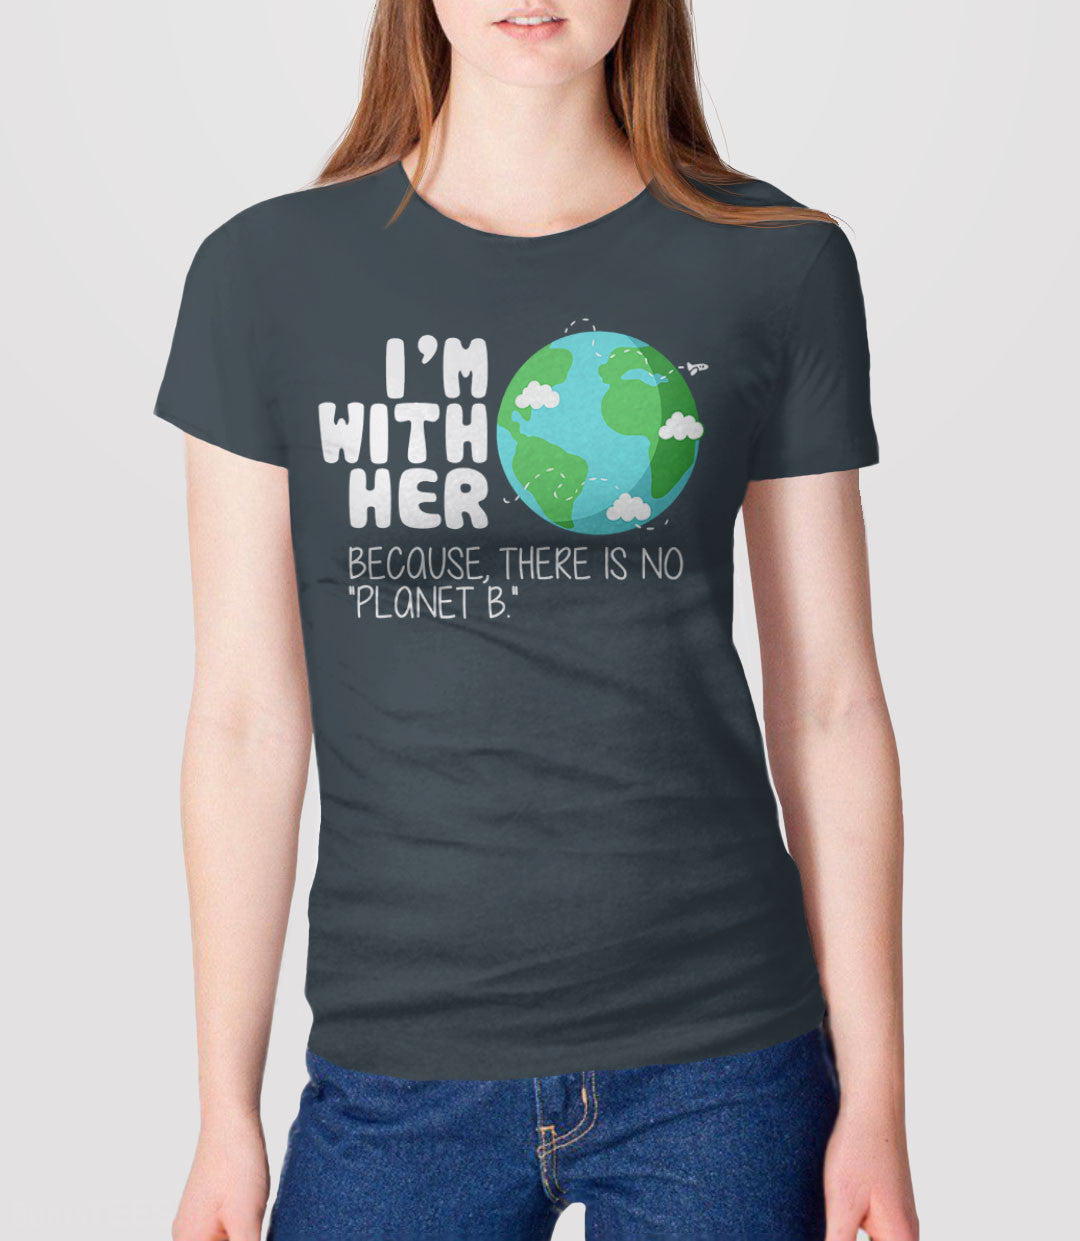 I'm With Her Because There is No Planet B t-shirt - gray womens tee